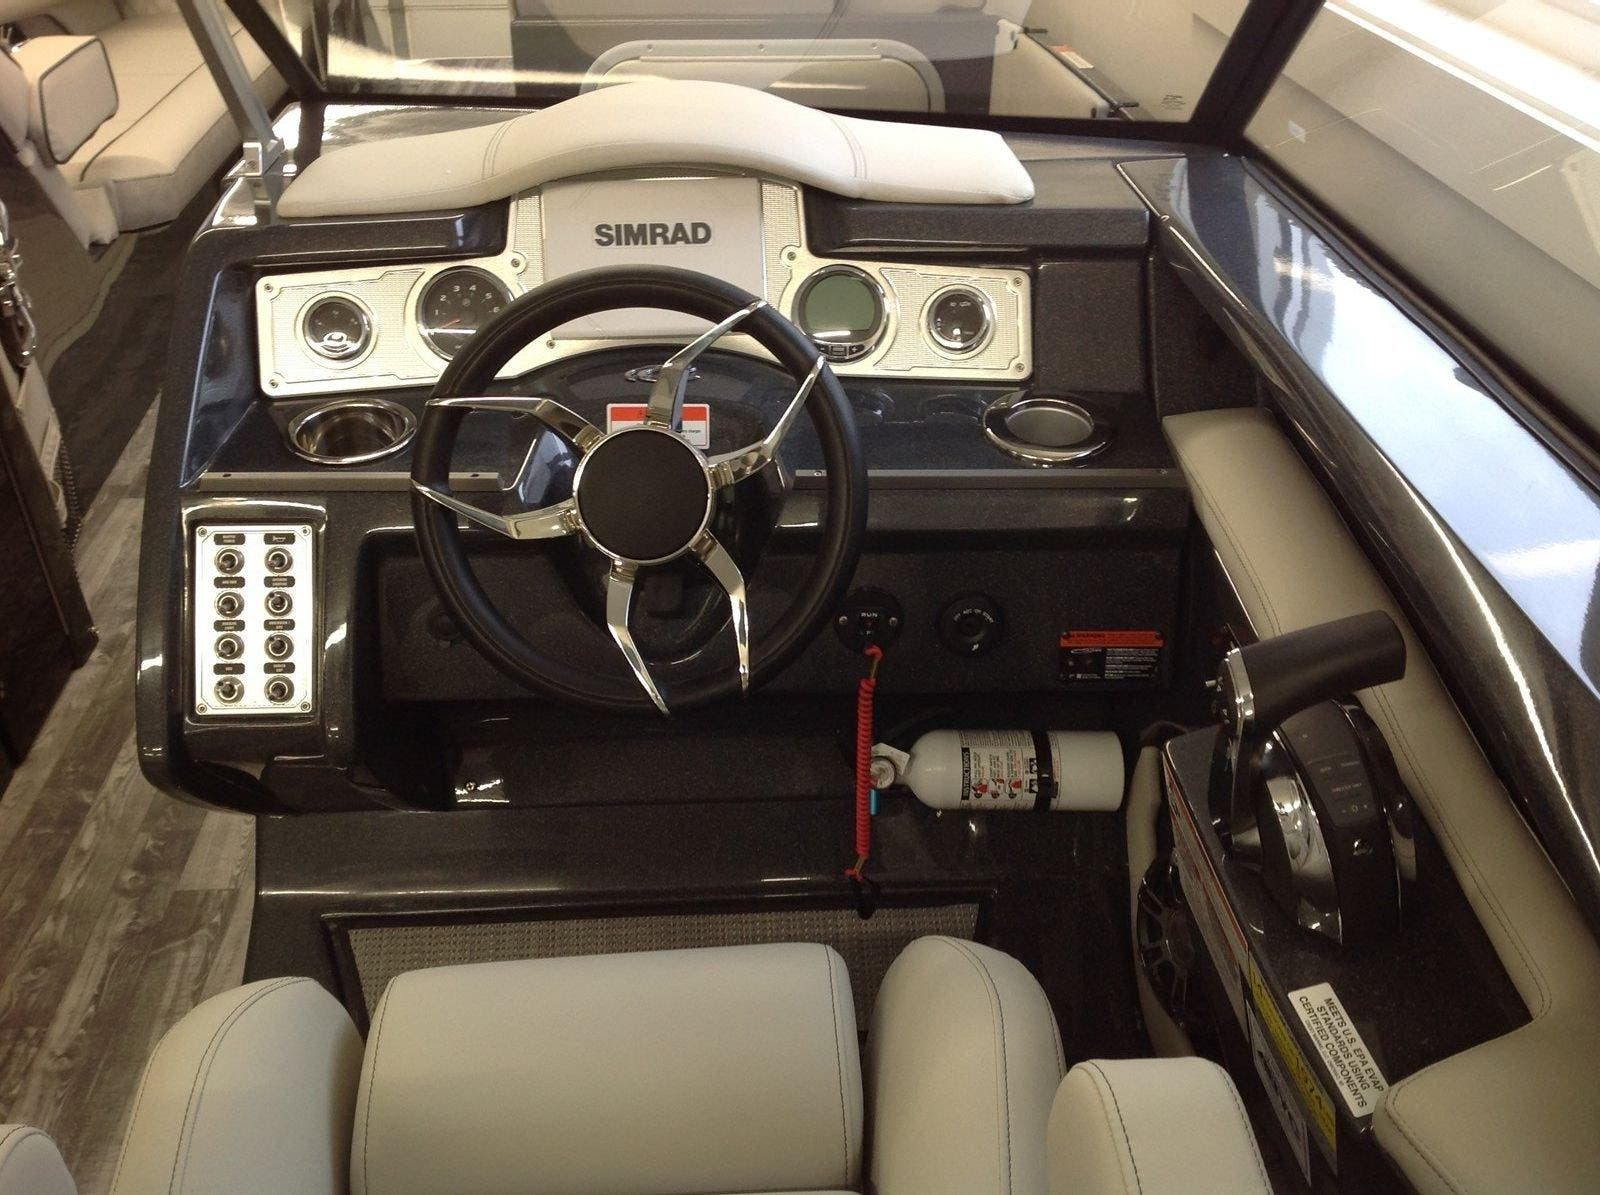 2020 Crest boat for sale, model of the boat is Continental 270sls & Image # 6 of 15